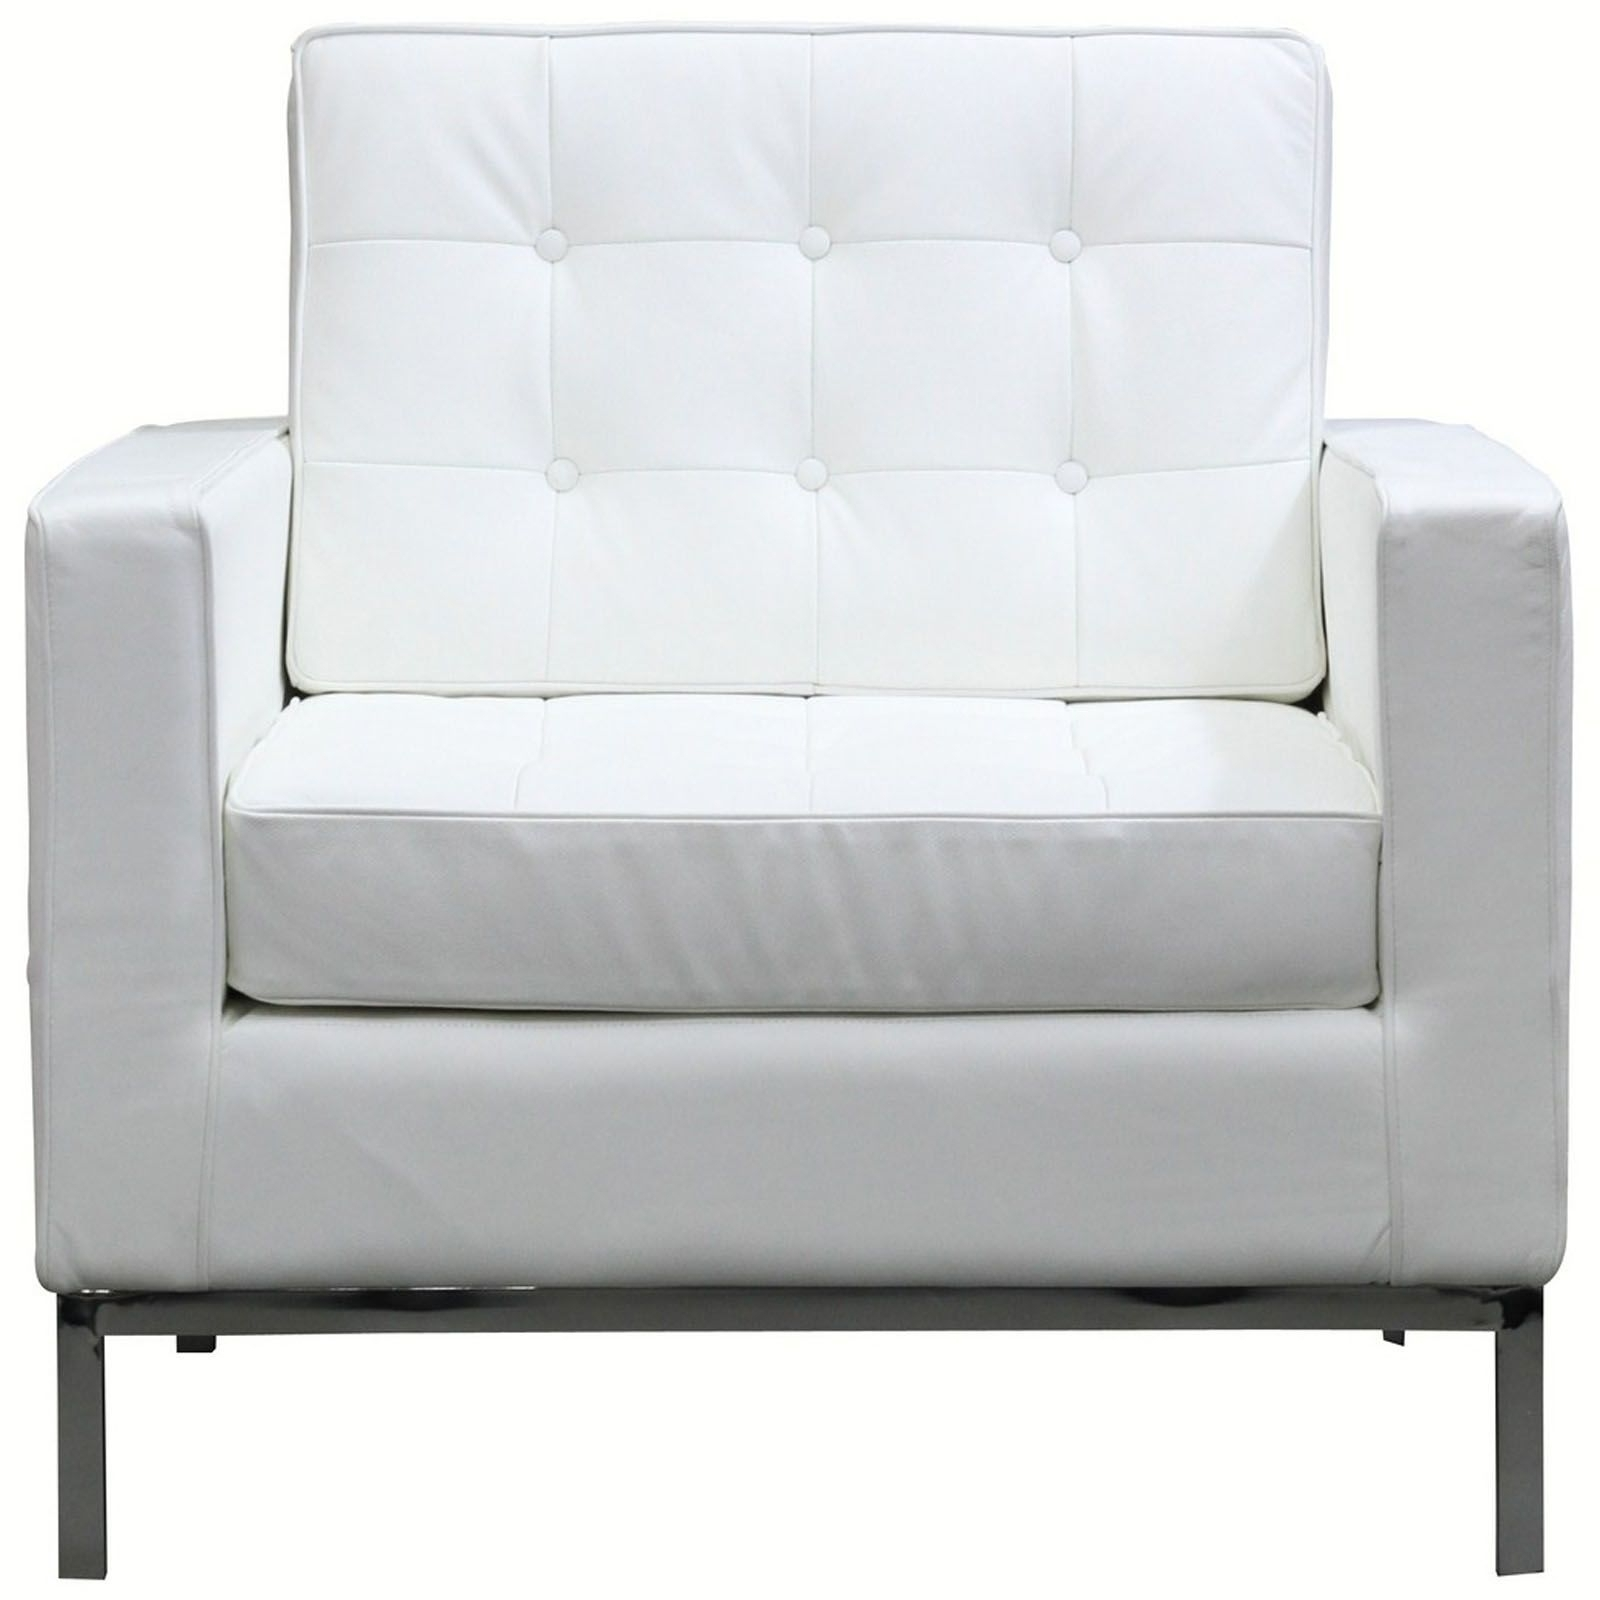 White Leather Sofas, Leather Sofas And Within Most Popular Contemporary Sofas And Chairs (View 15 of 15)